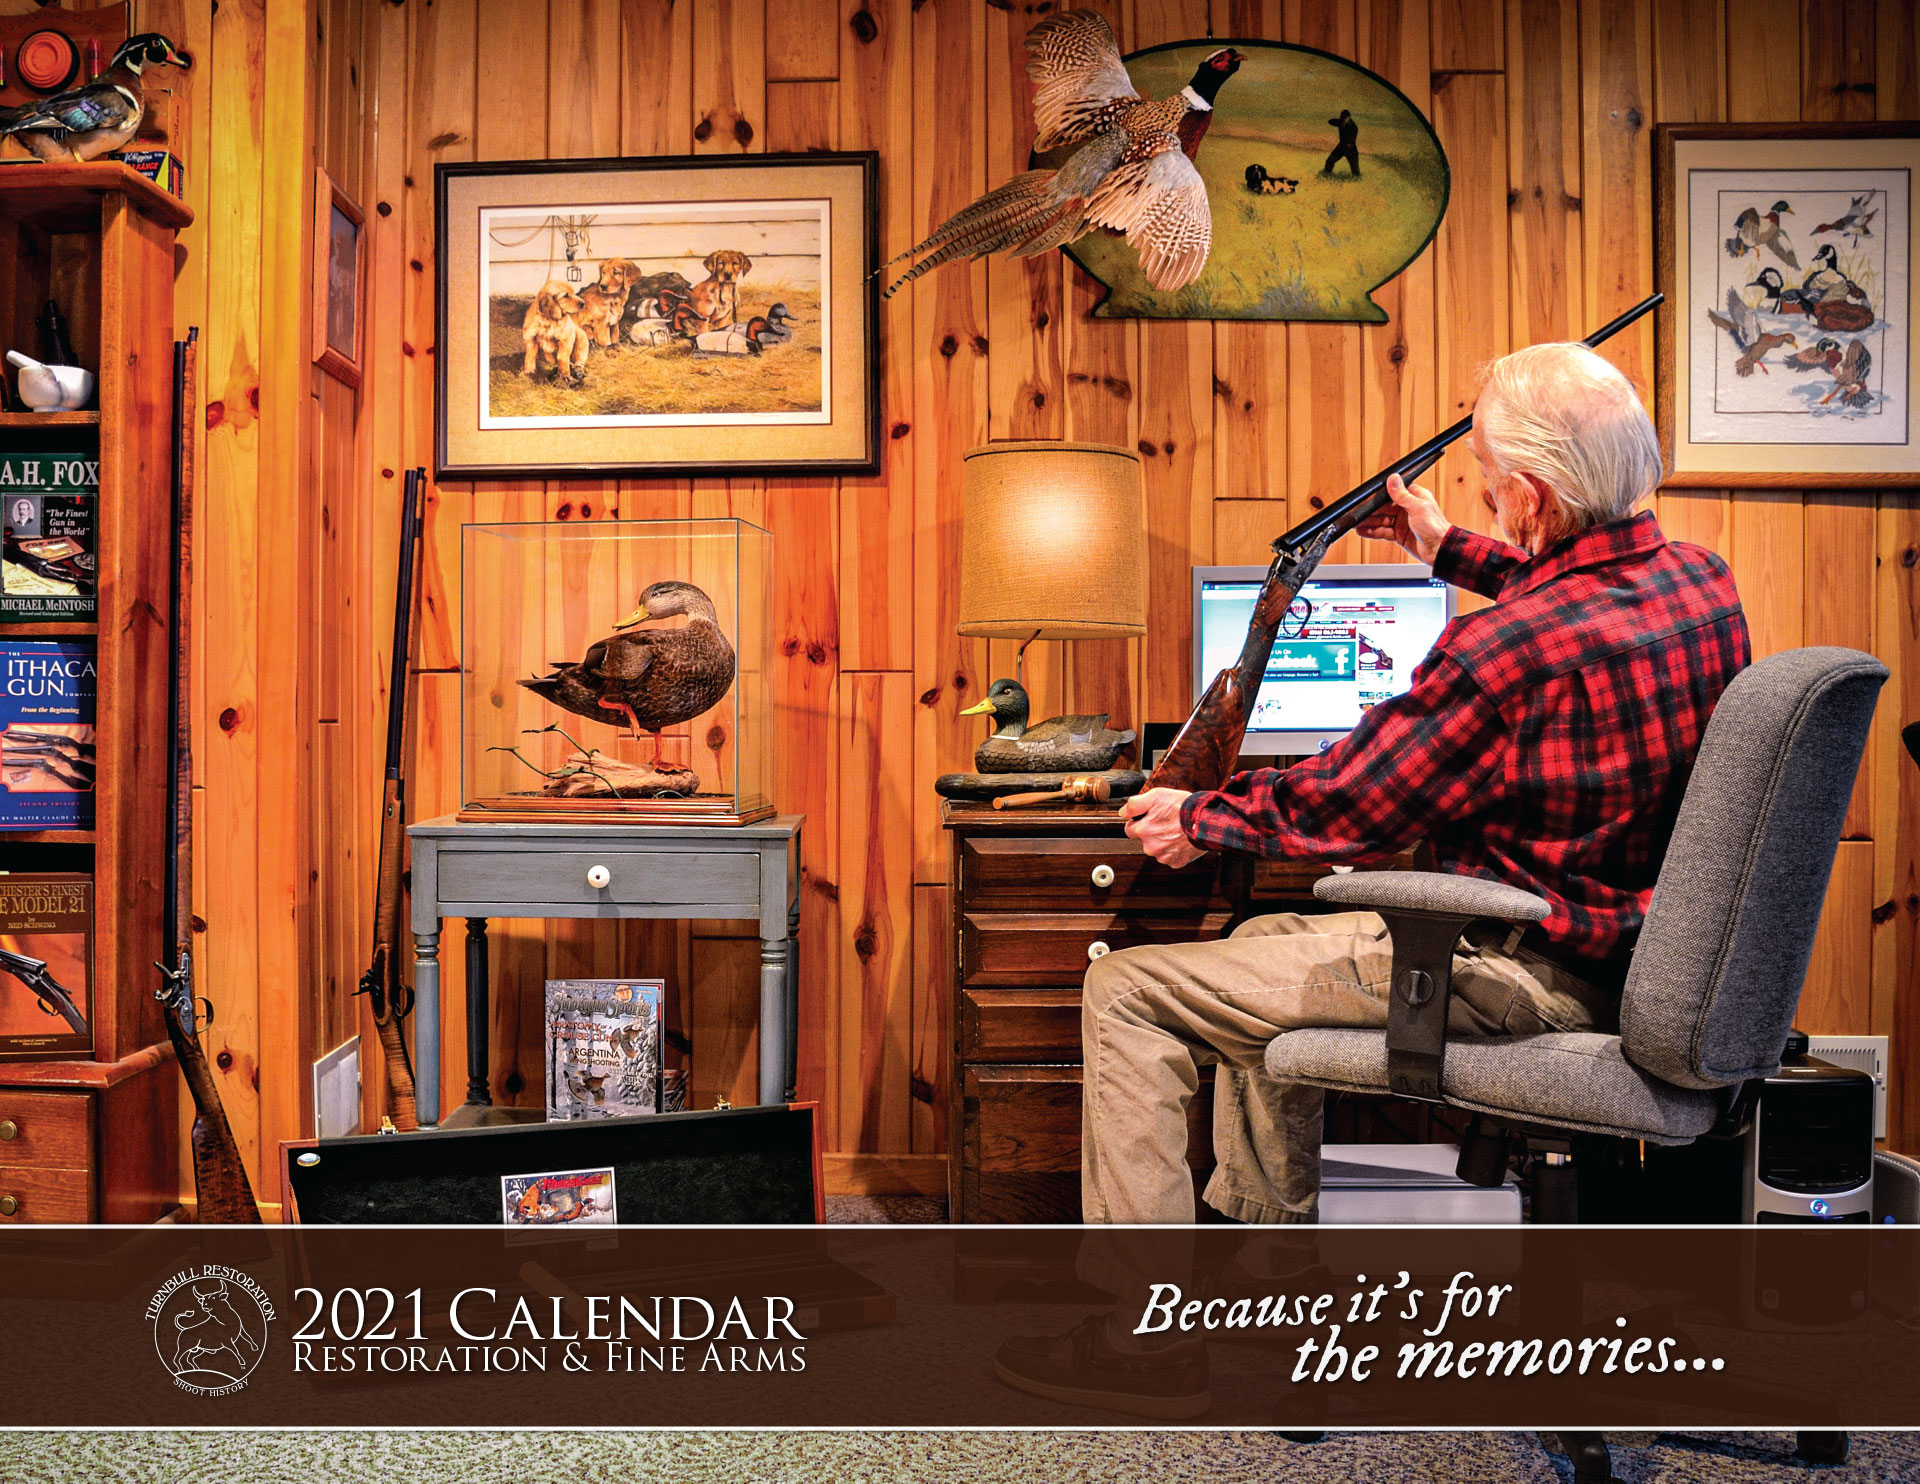 Image of the Turnbull Restoration 2021 calendar cover